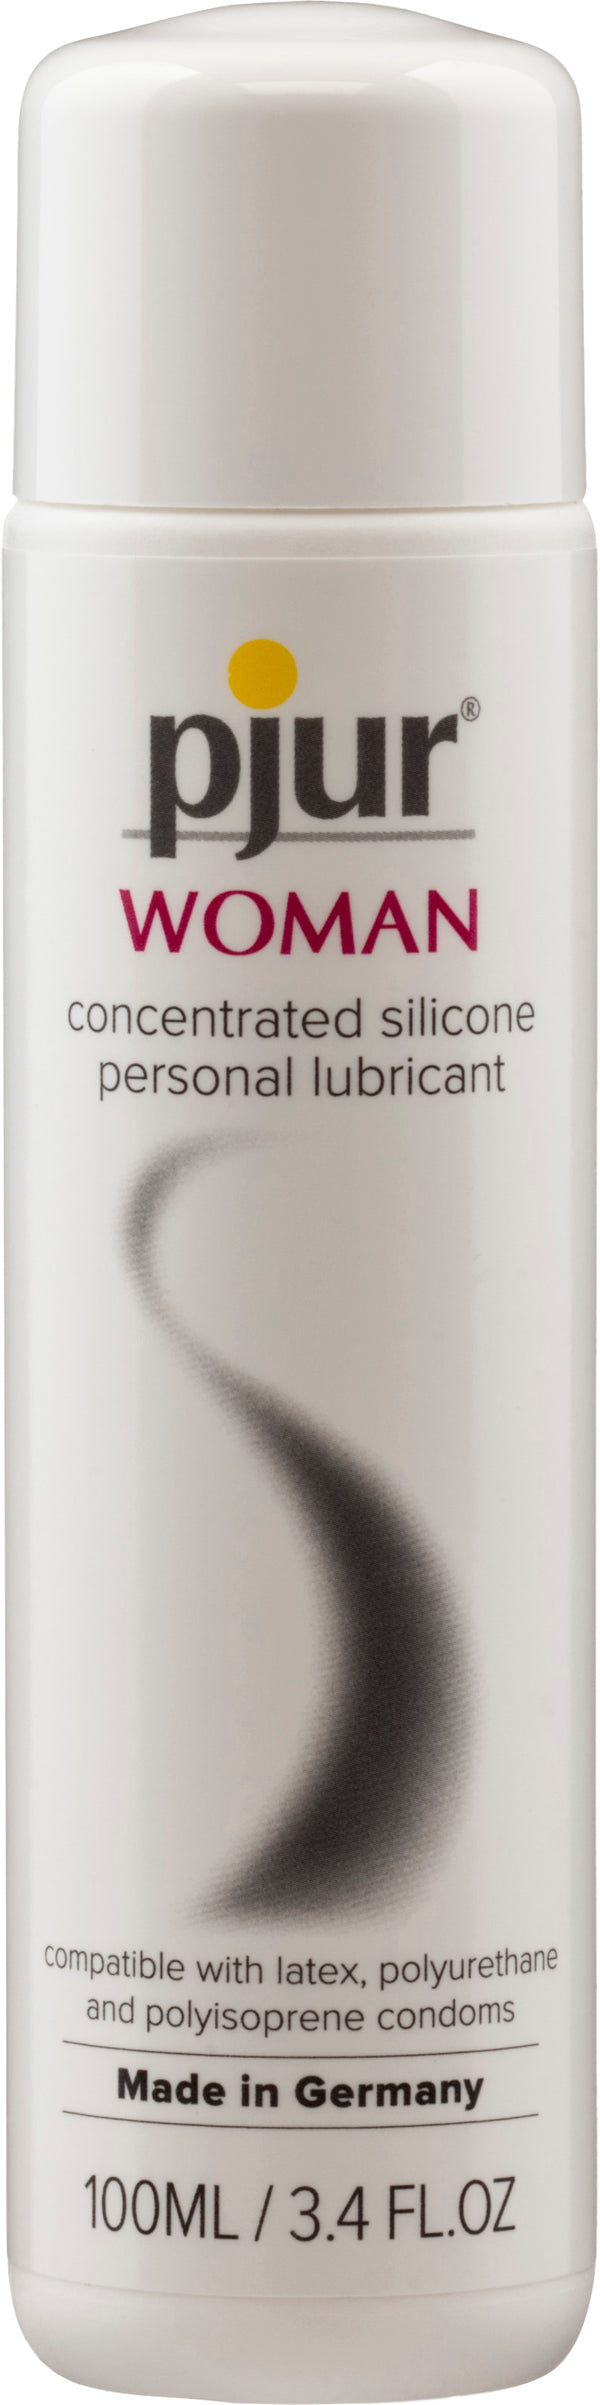 Pjur Woman Bodyglide - Silicone - 100ml - realistic enterprises llc